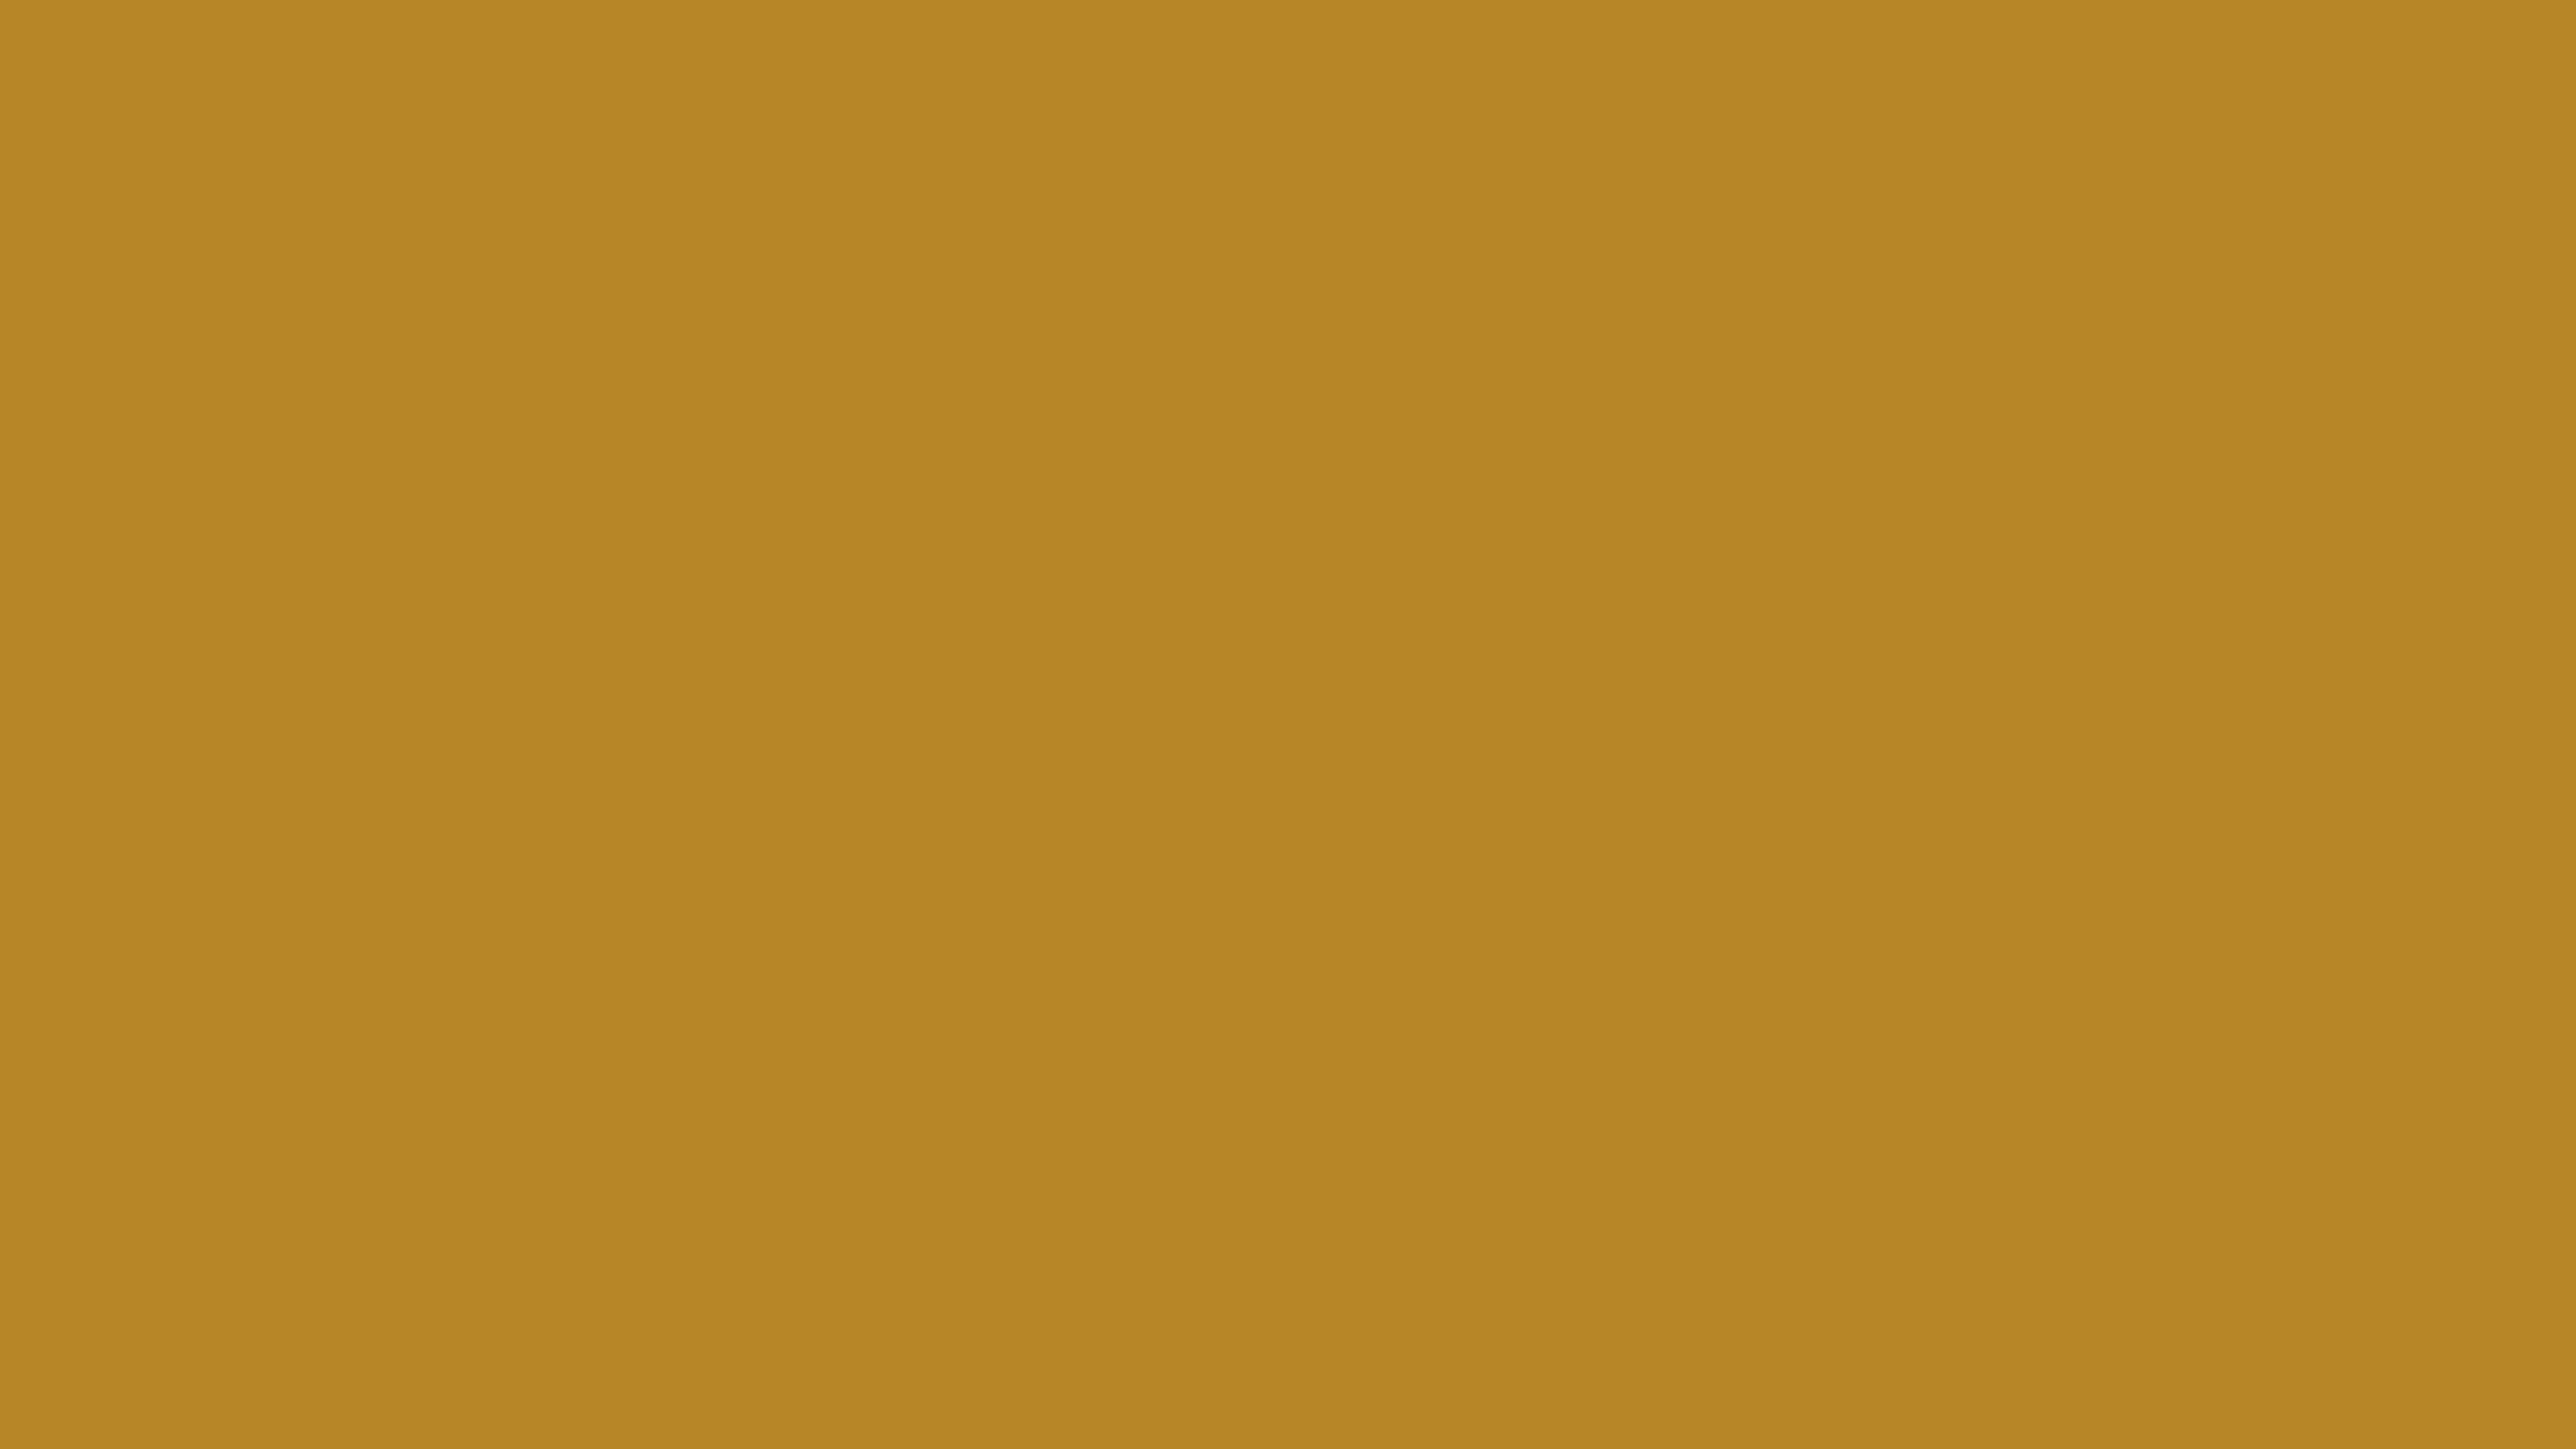 4096x2304 University Of California Gold Solid Color Background